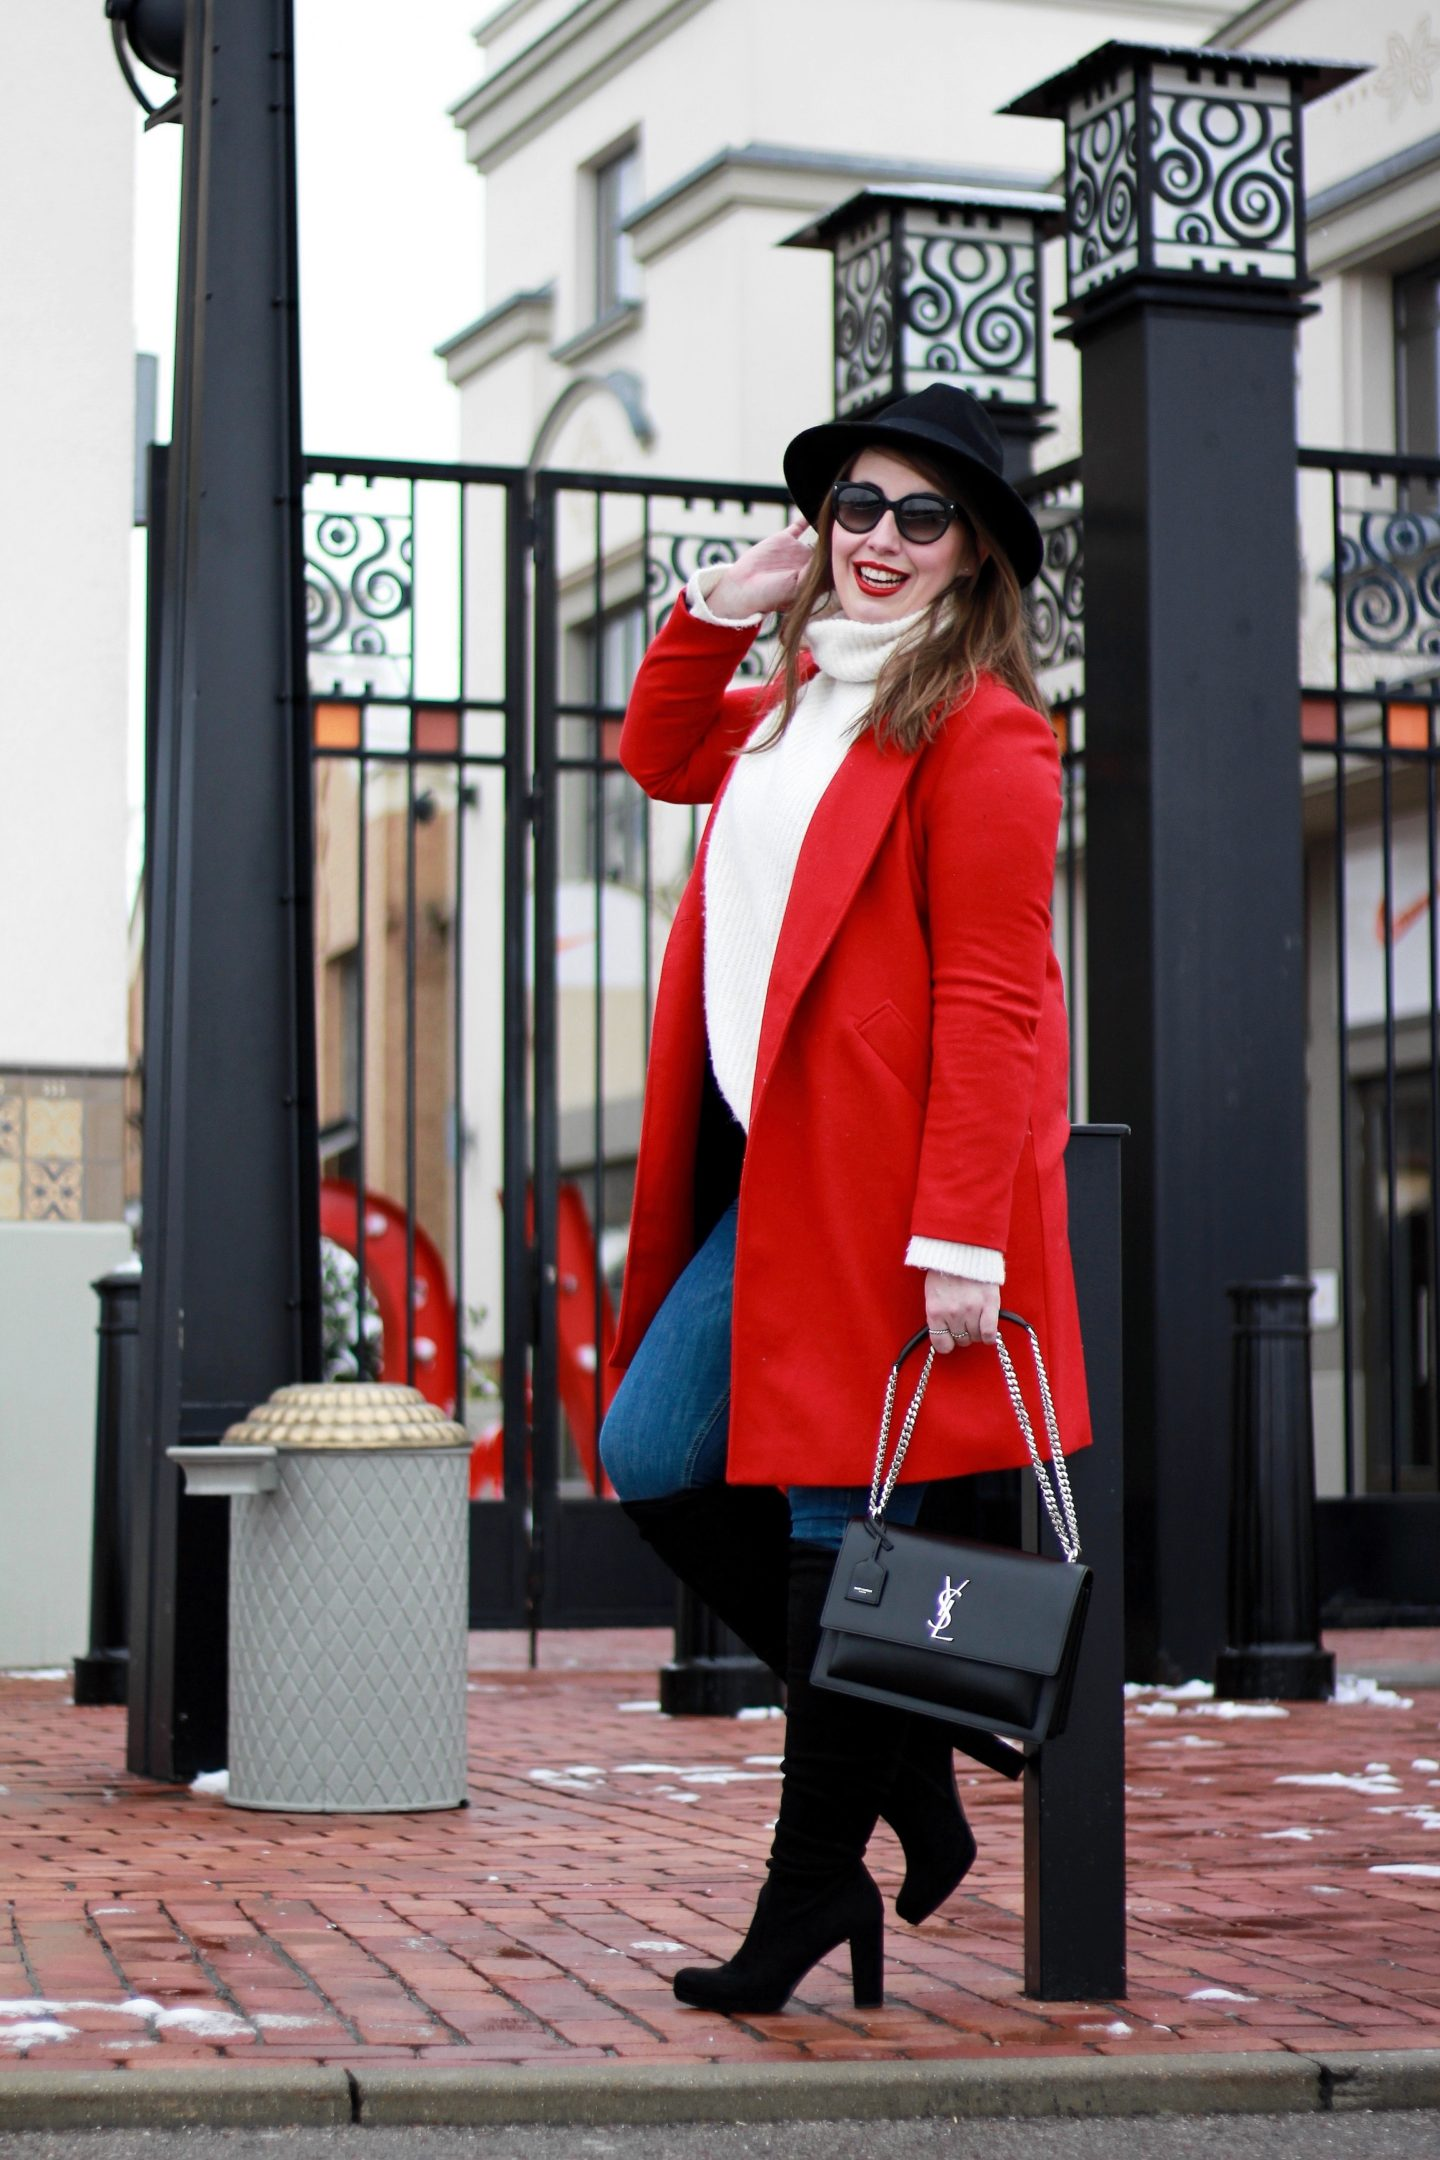 fashion-statement-roter-mantel-blue-jeans-wollpullover-fedora-hut-saint-laurent-sunset-bag-ysl-prada-sonnenbrille-overknees-susanne-heidebach-misssuzieloves